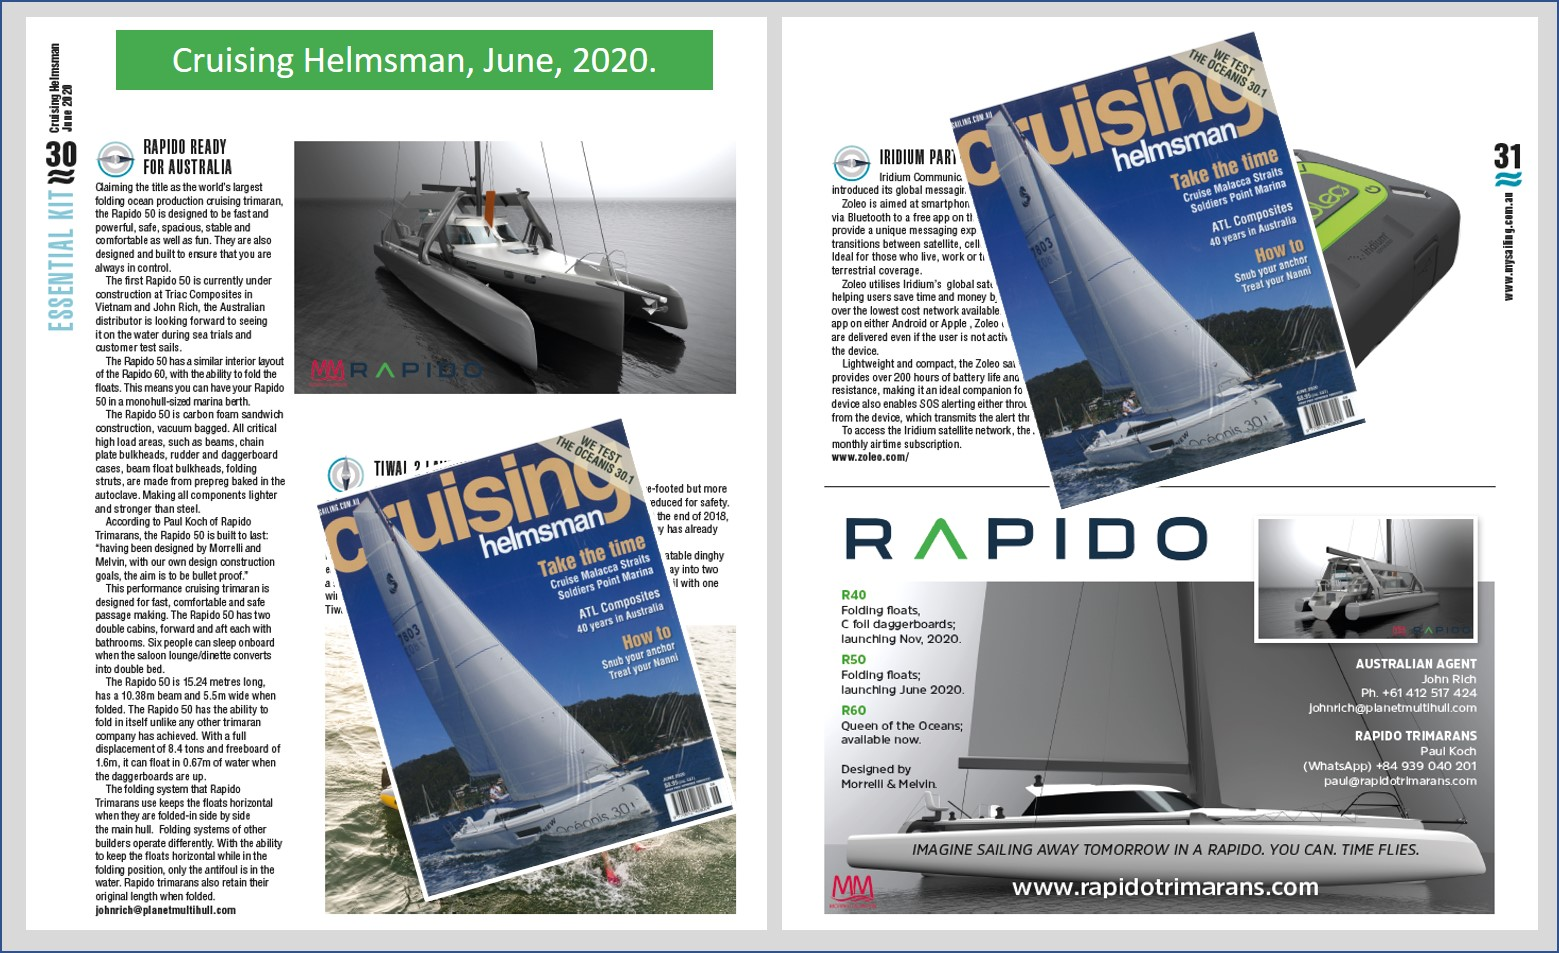 Cruising Helmsman publishes article on Rapido 50